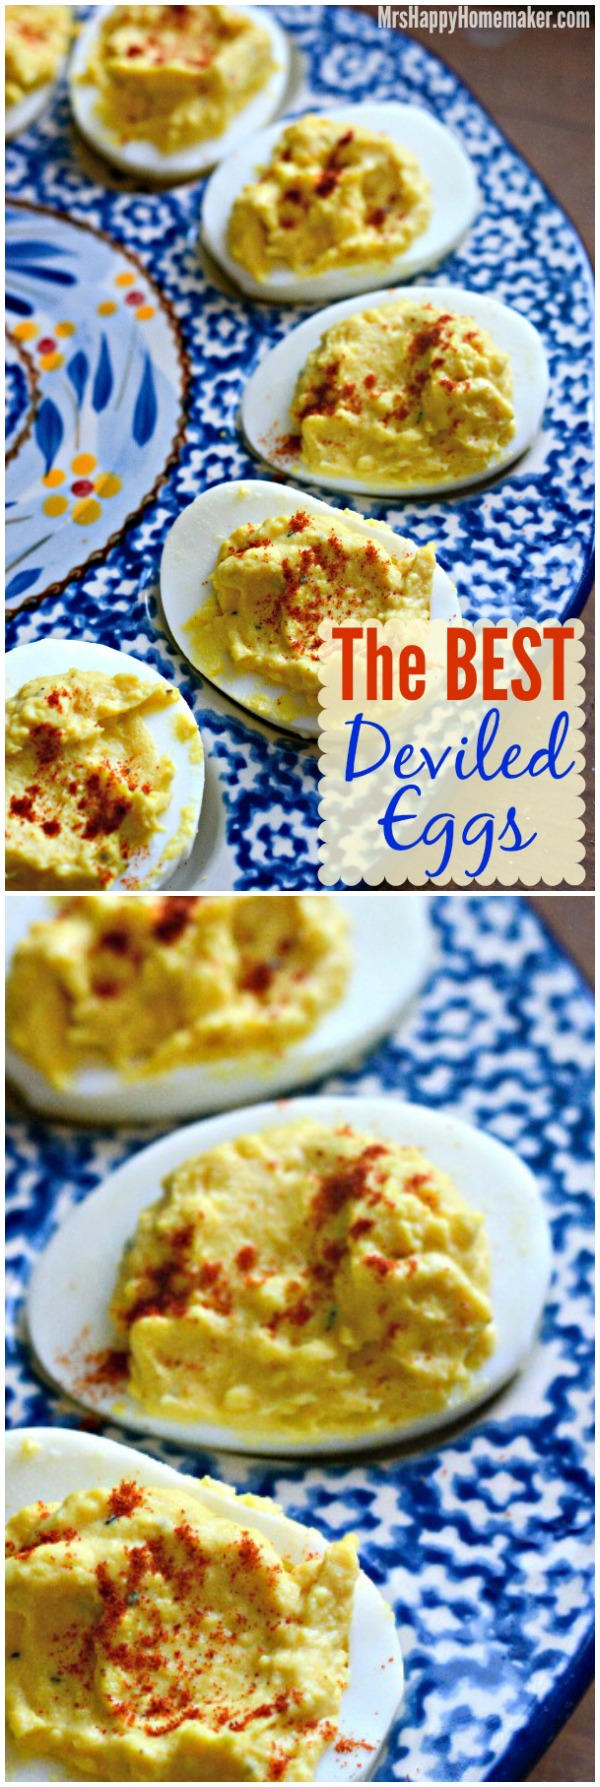 These are the BEST EVER DEVILED EGGS - my family won't eat any other deviled egg other than these. They really are amazing. | MrsHappyHomemaker.com @MrsHappyHomemaker